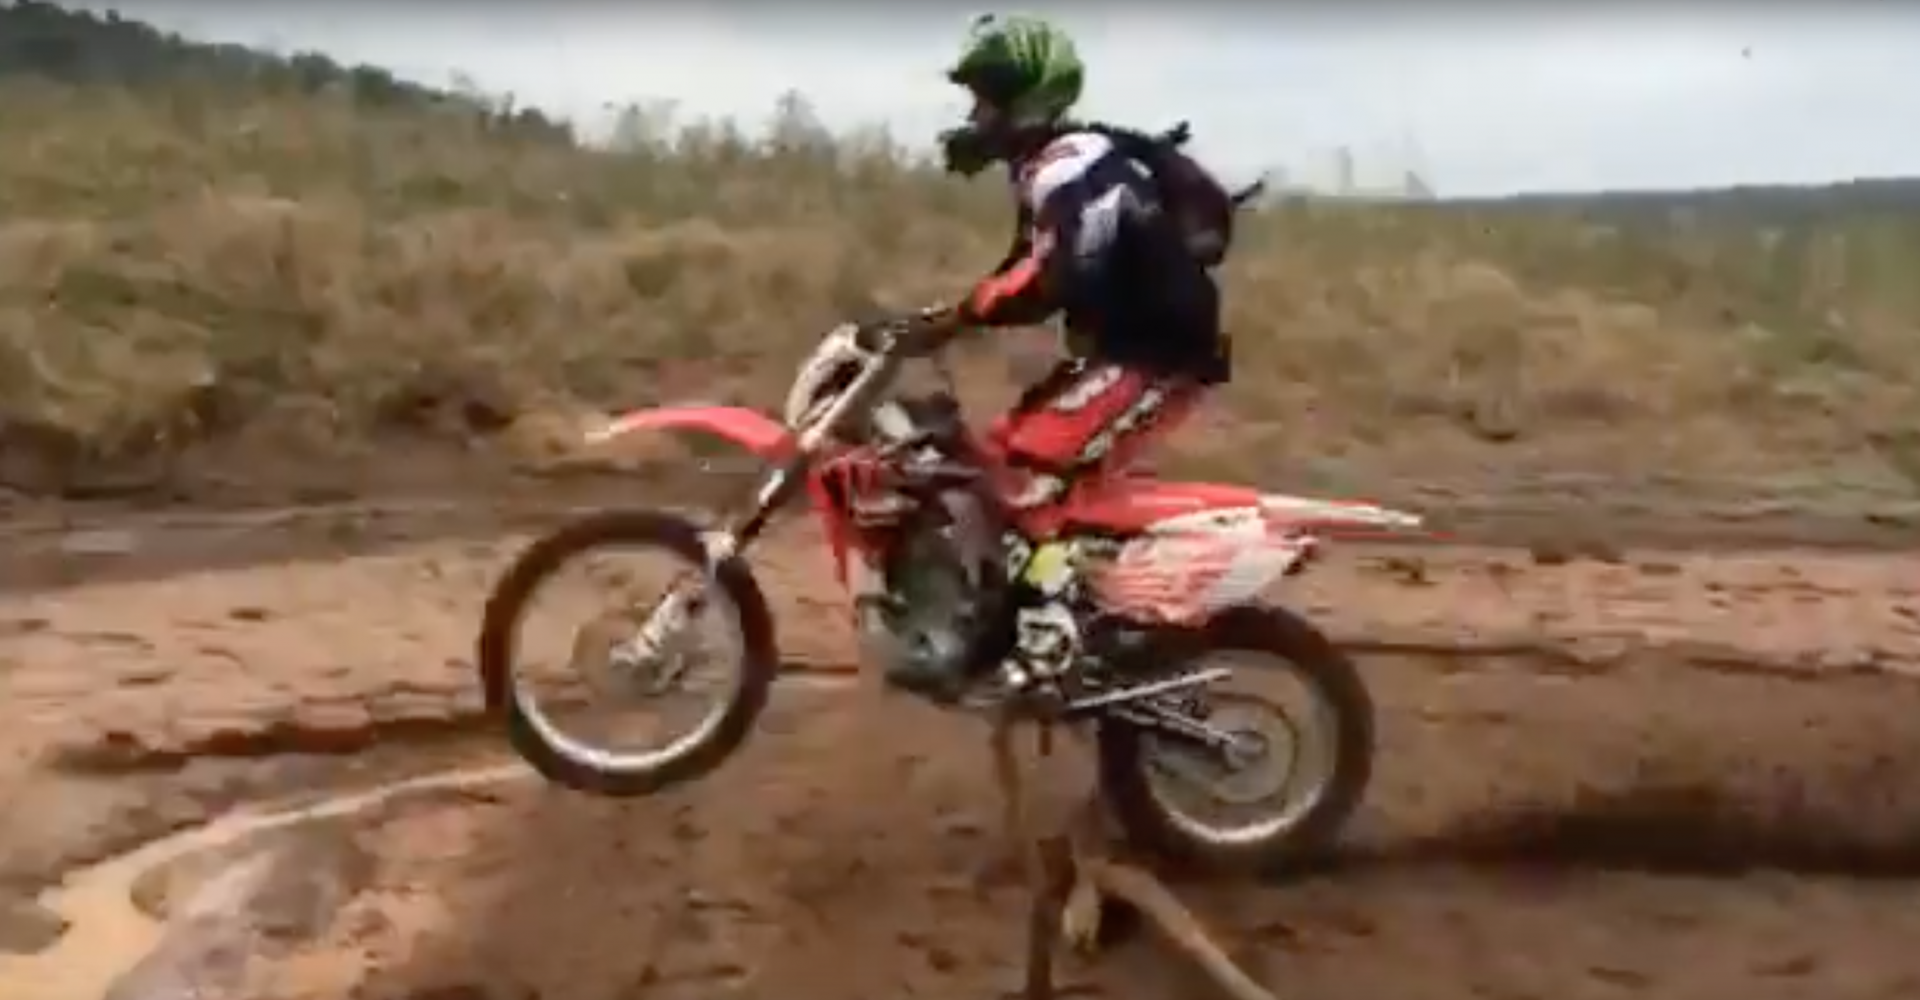 Another One Bites The Dust: Dirt Bike Rider Takes Messy Tumble In Epic Fail